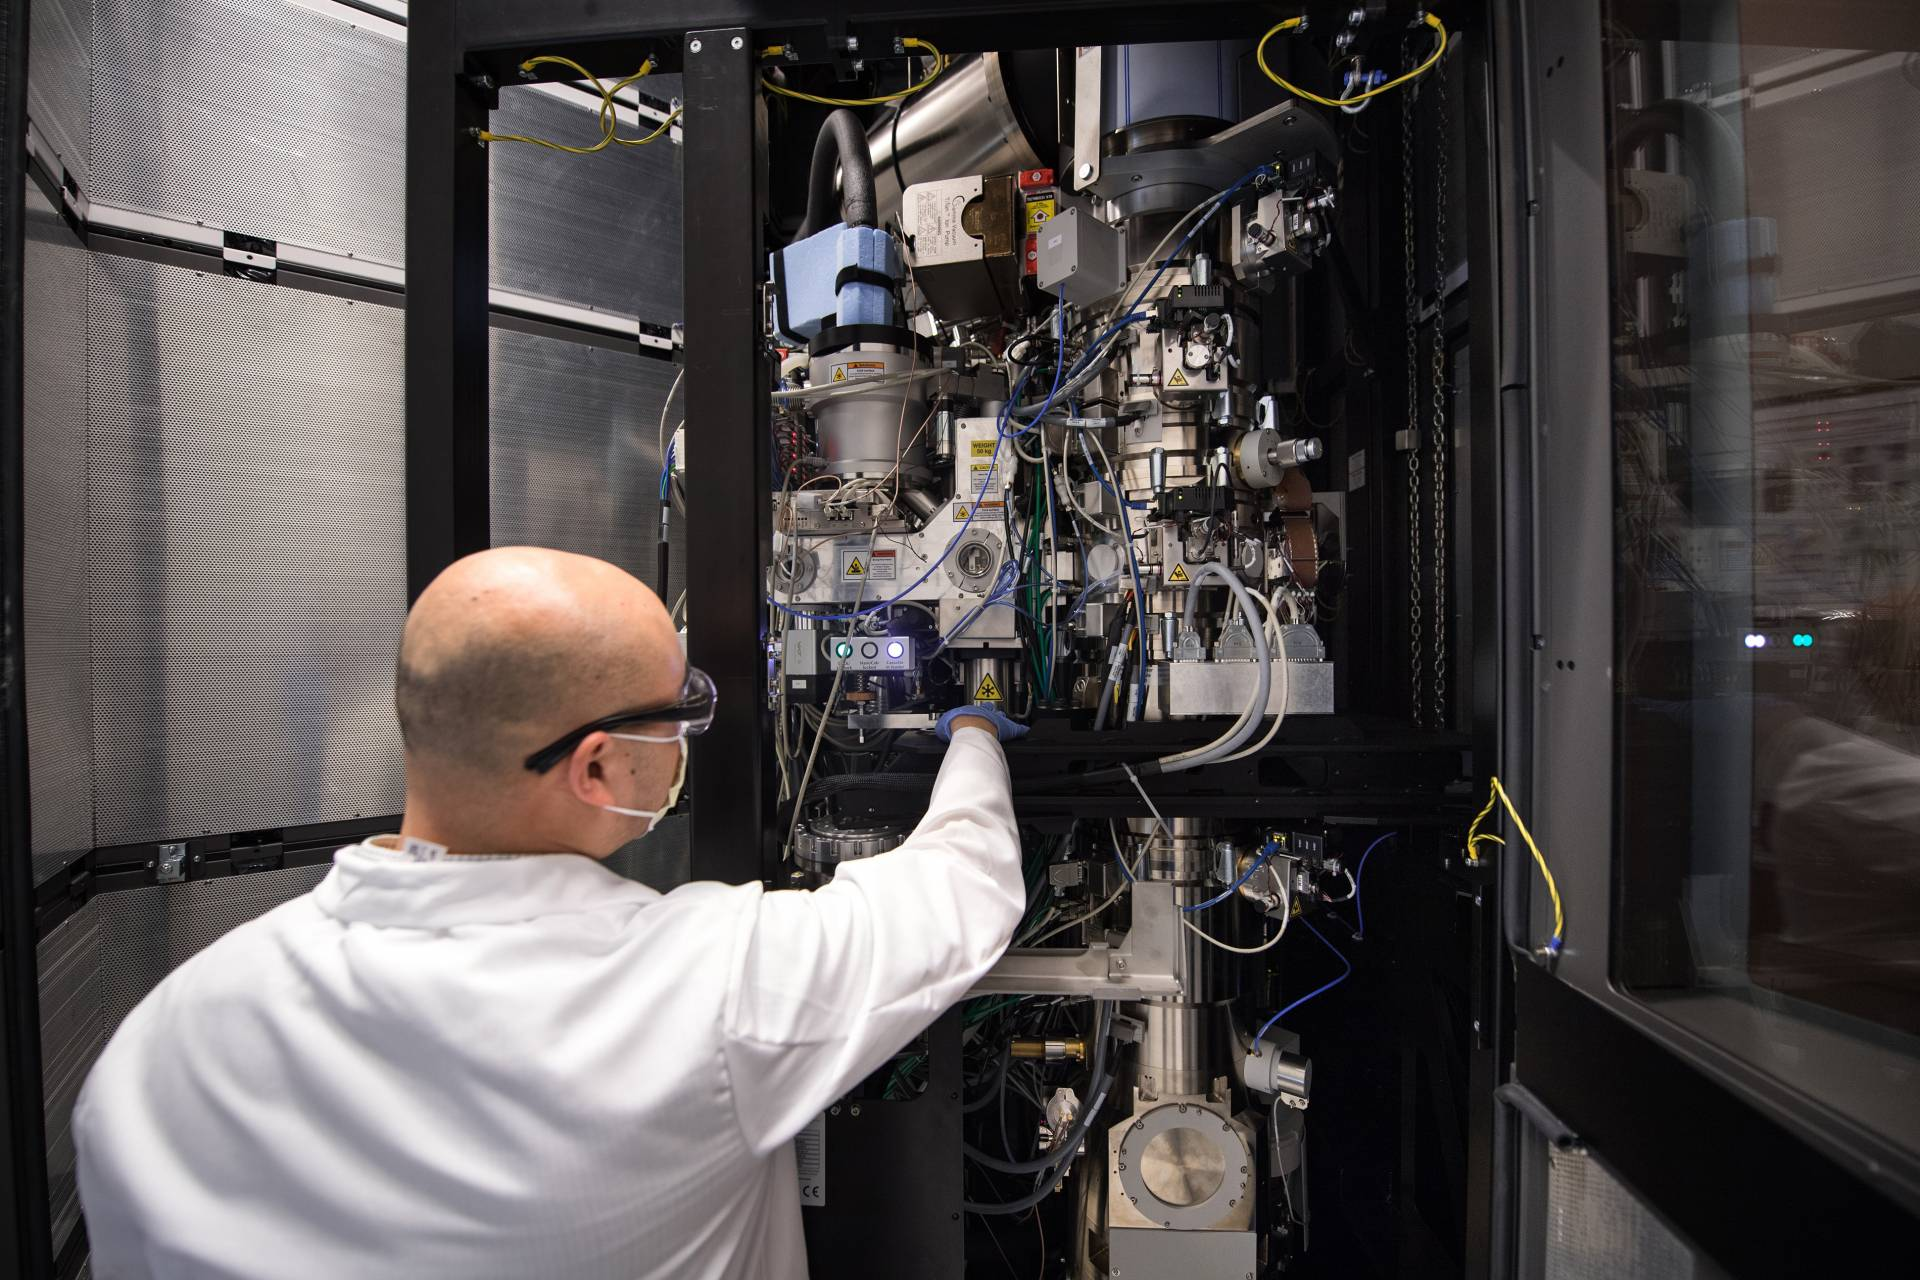 Paul Shao, imaging and analysis specialist, adjusts Princeton's cryo-electron microscope